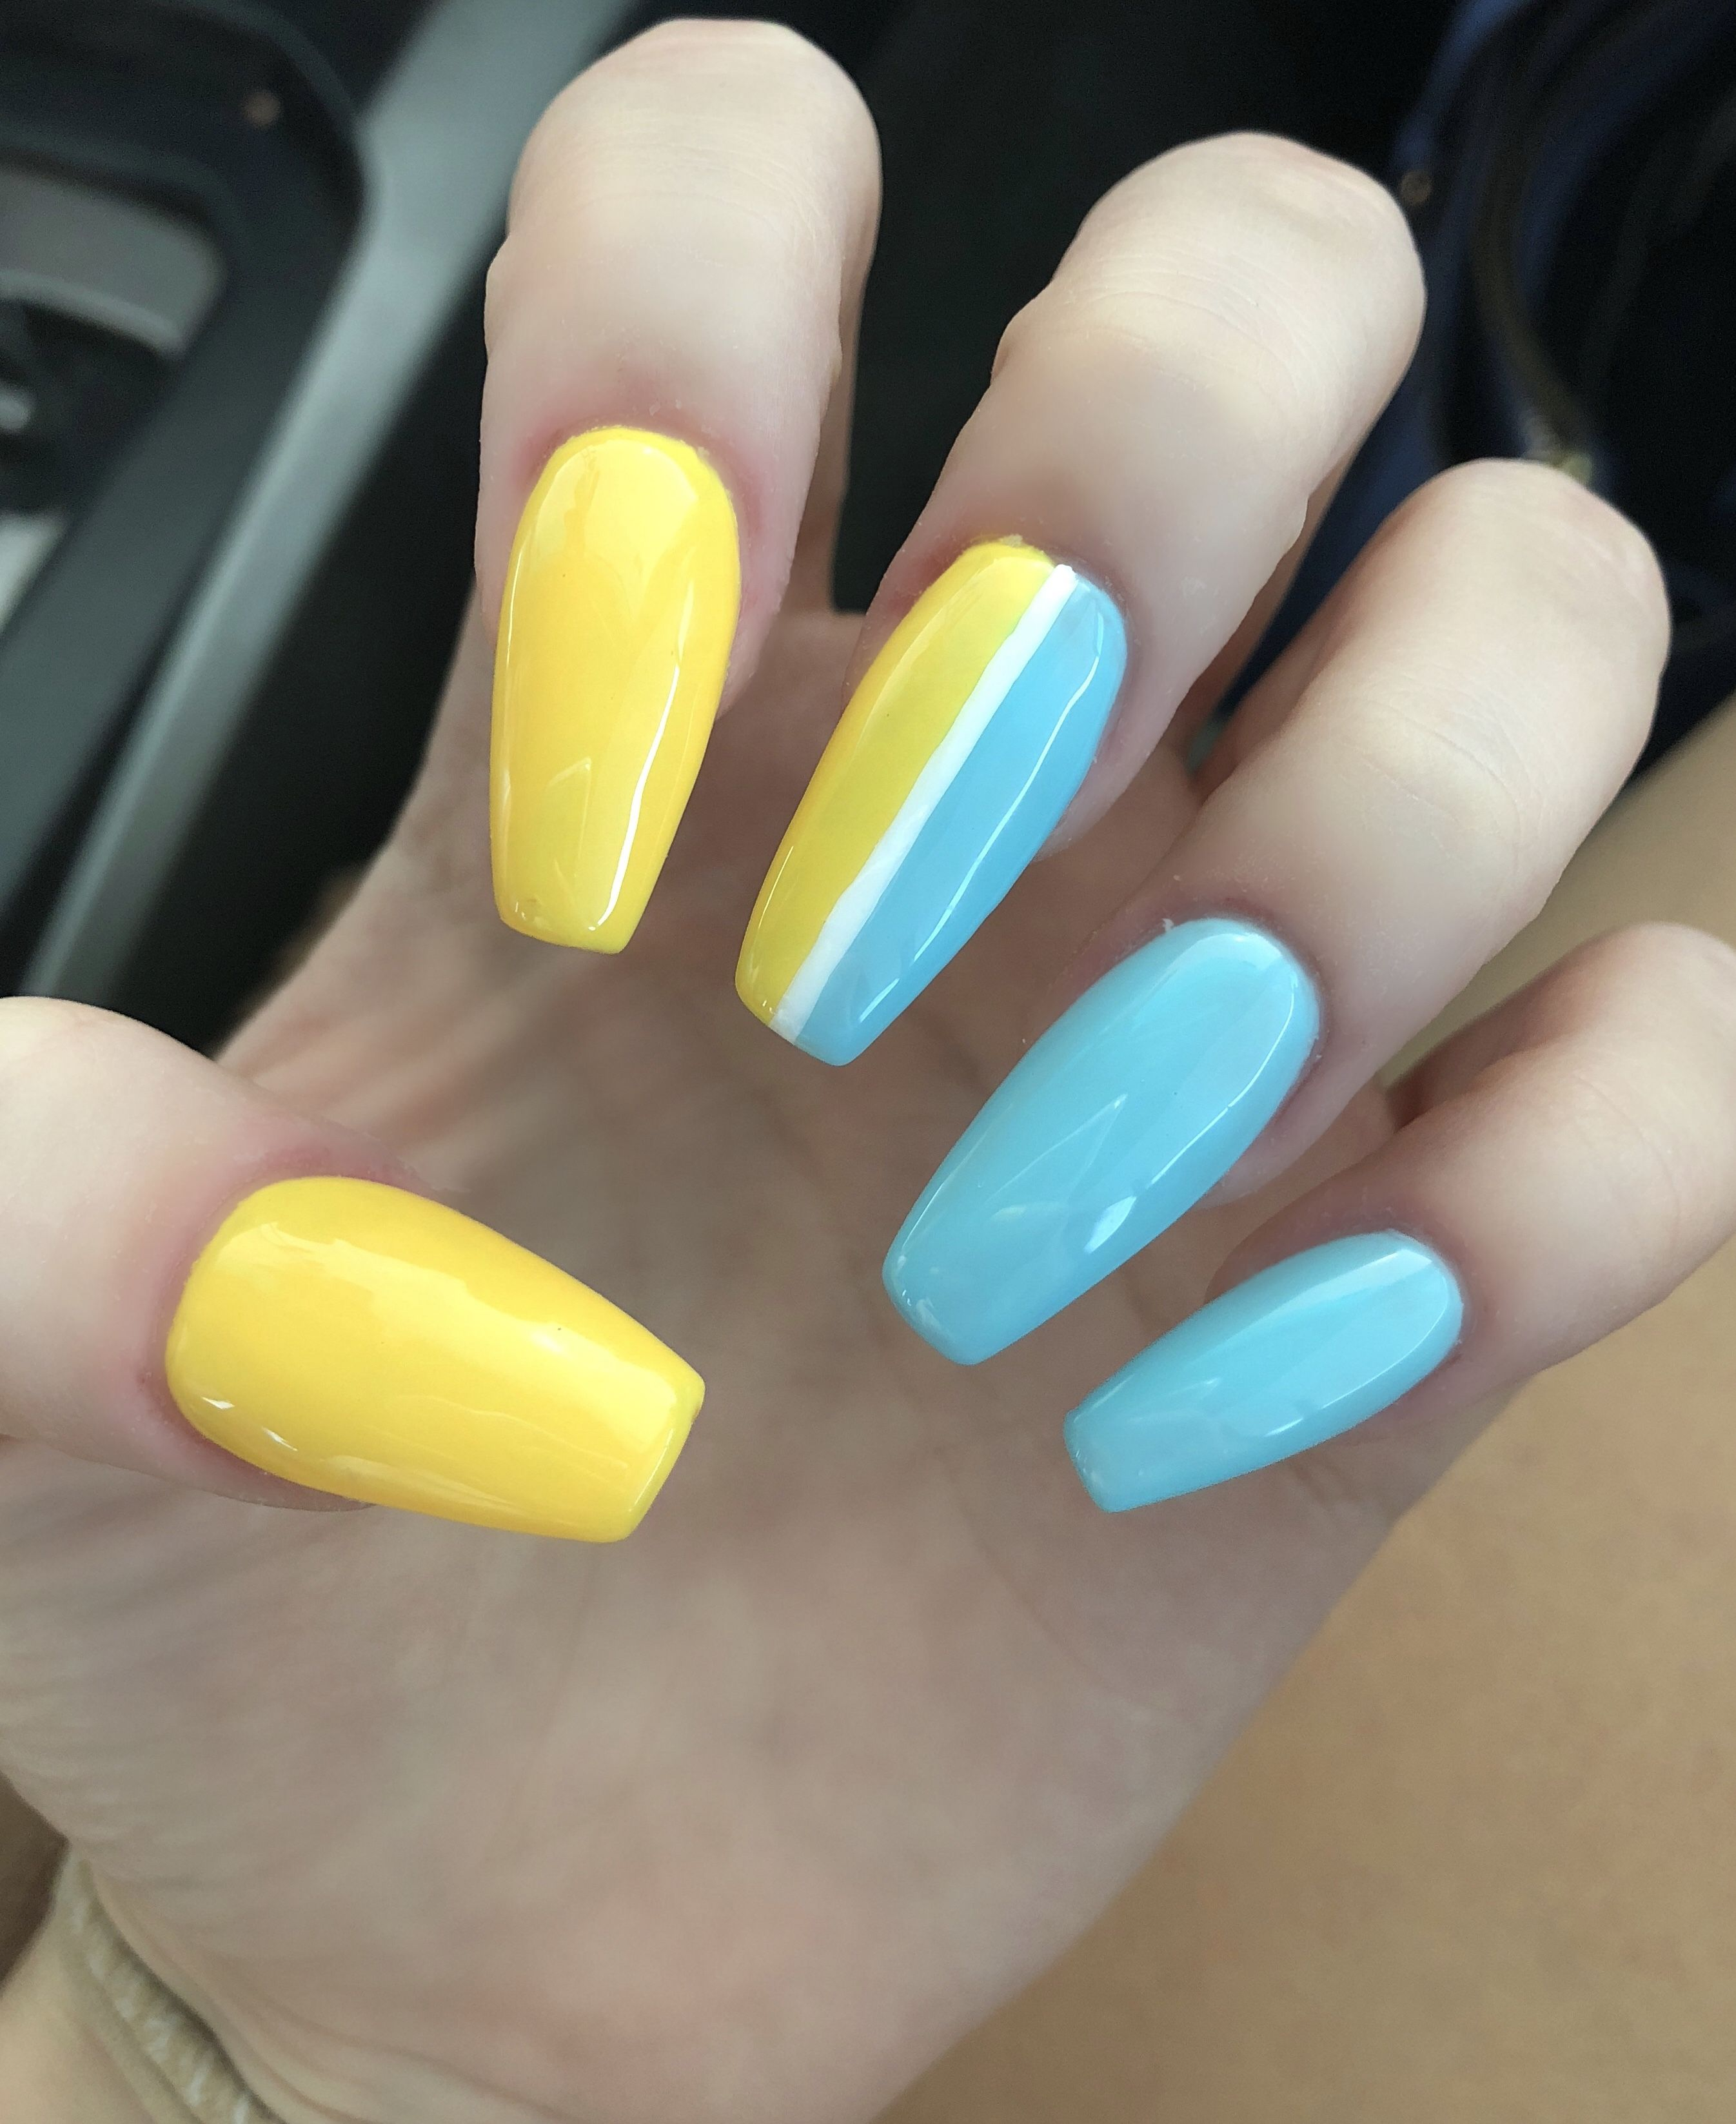 Coffin Acrylic Nails Nails Acrylic Nails Coffin Yellow Nails Find and save images from the coffin nails collection by unica (flowerchildre) on we heart it, your everyday app to get lost in what you love. nails acrylic nails coffin